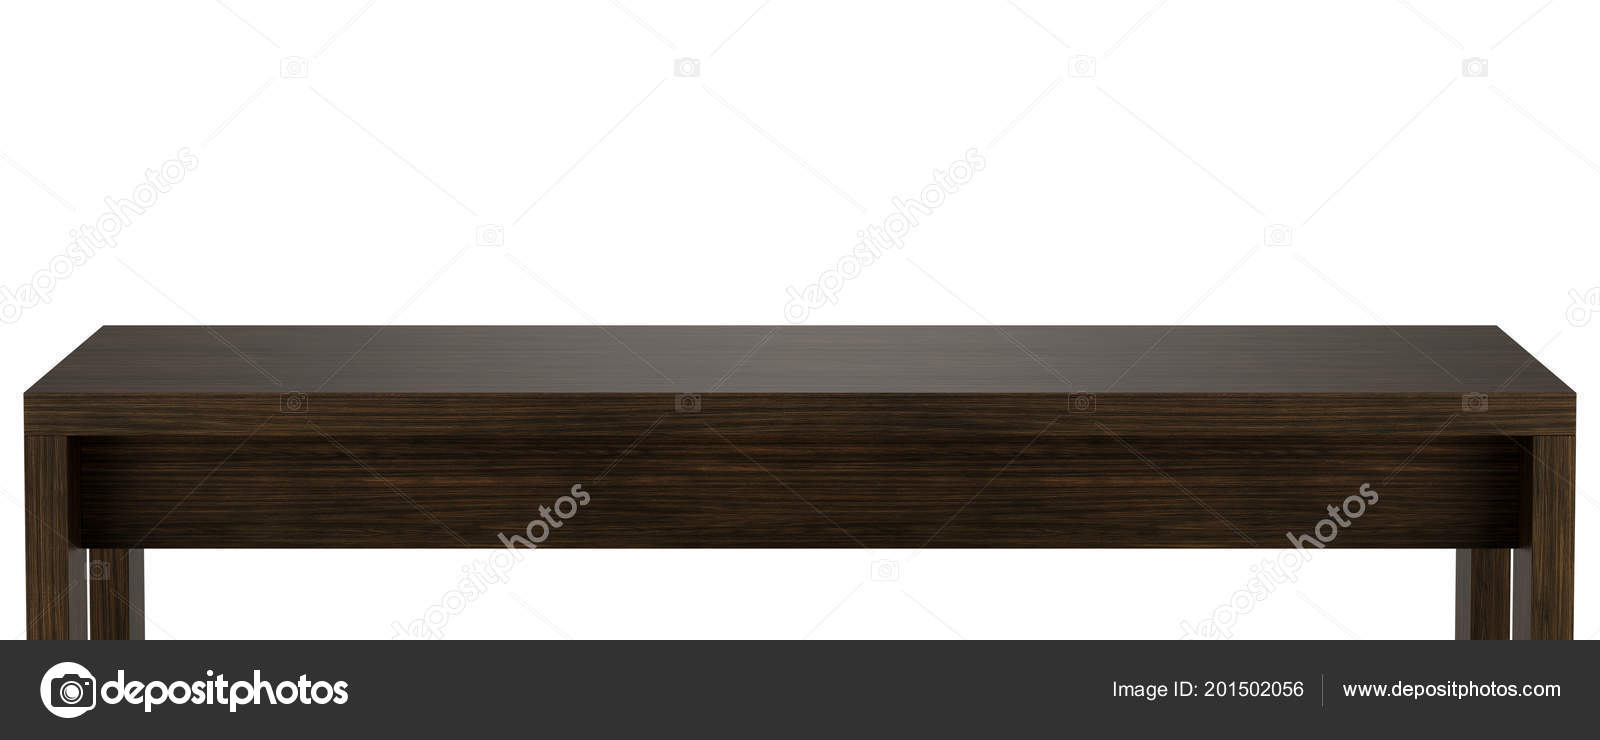 Wooden Table Top Template Isolated White Background Illustration